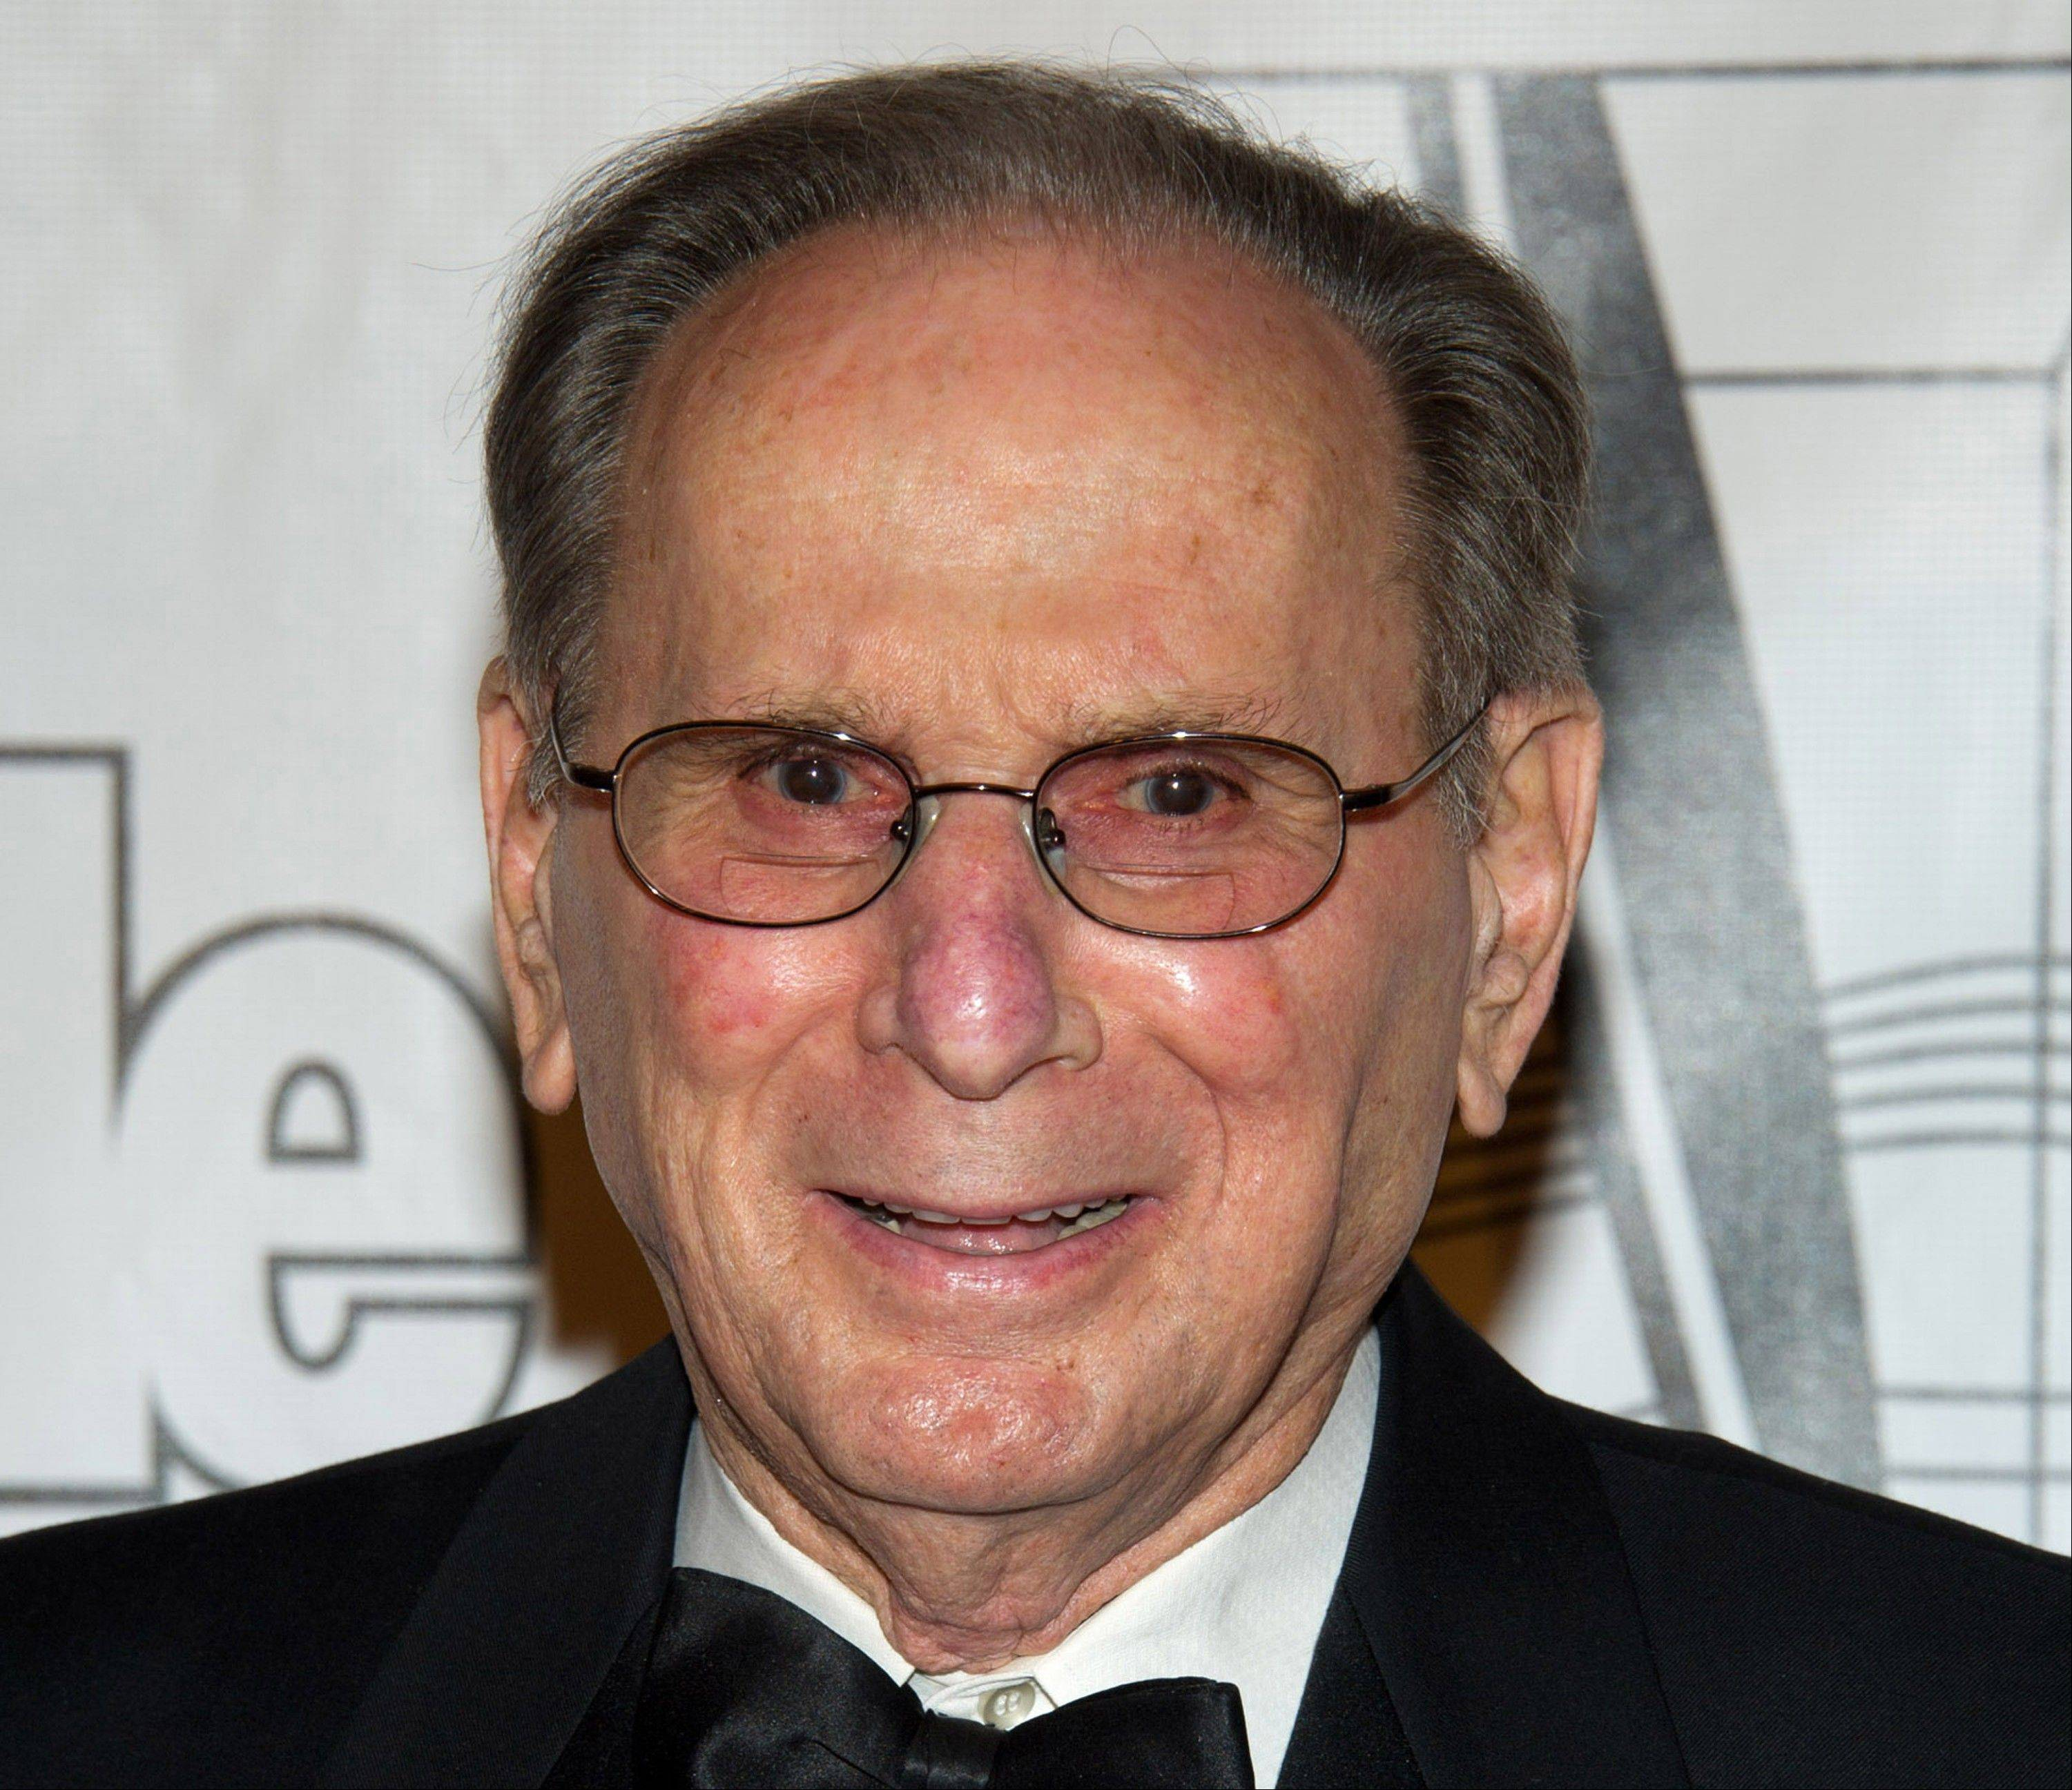 In this June 16, 2011 file photo, Hal David arrives at the 42nd Annual Songwriters Hall of Fame Awards in New York.